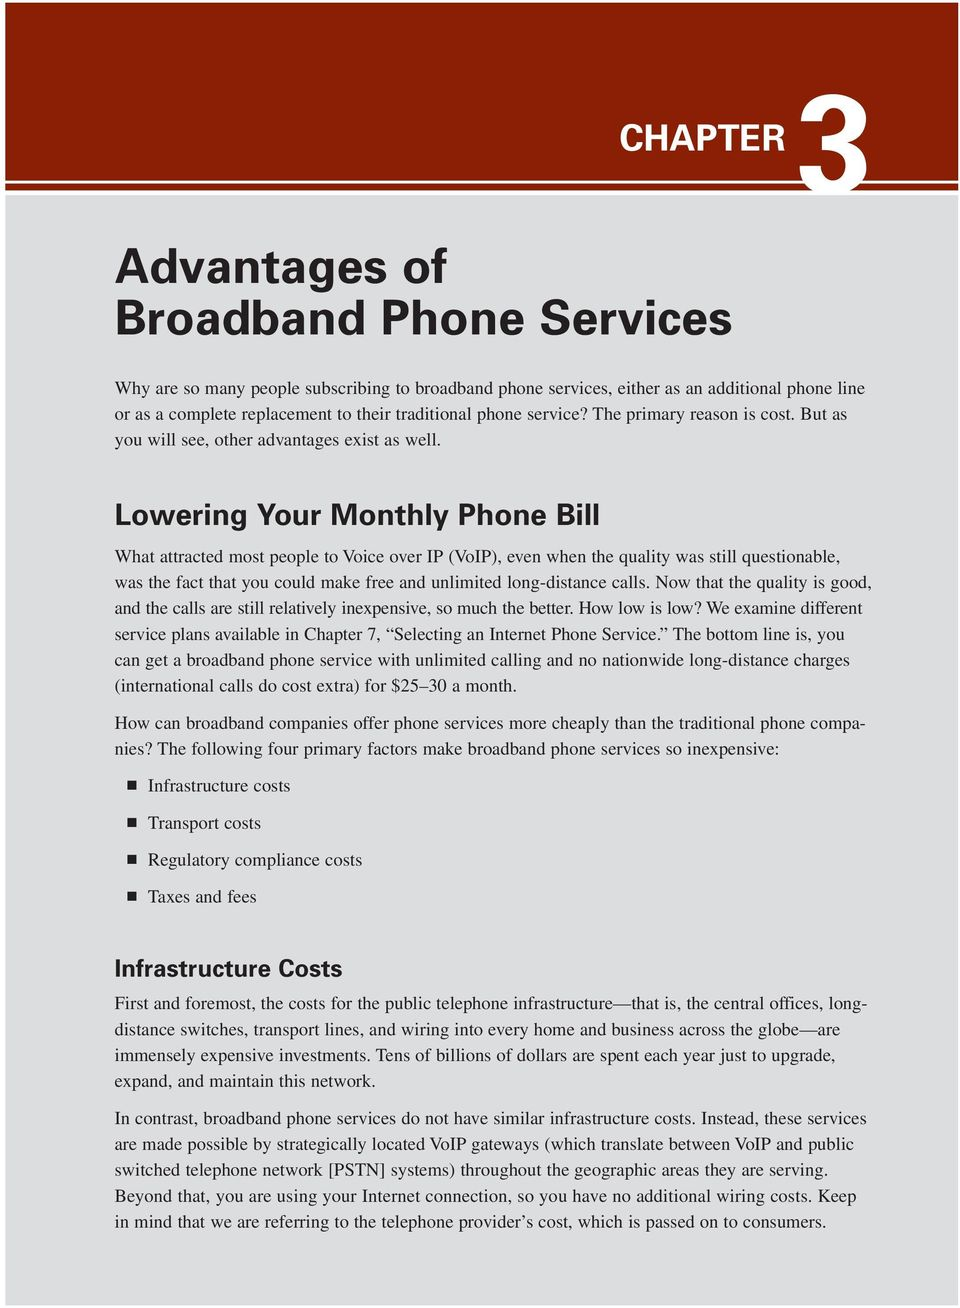 Lowering Your Monthly Phone Bill What attracted most people to Voice over IP (VoIP), even when the quality was still questionable, was the fact that you could make free and unlimited long-distance